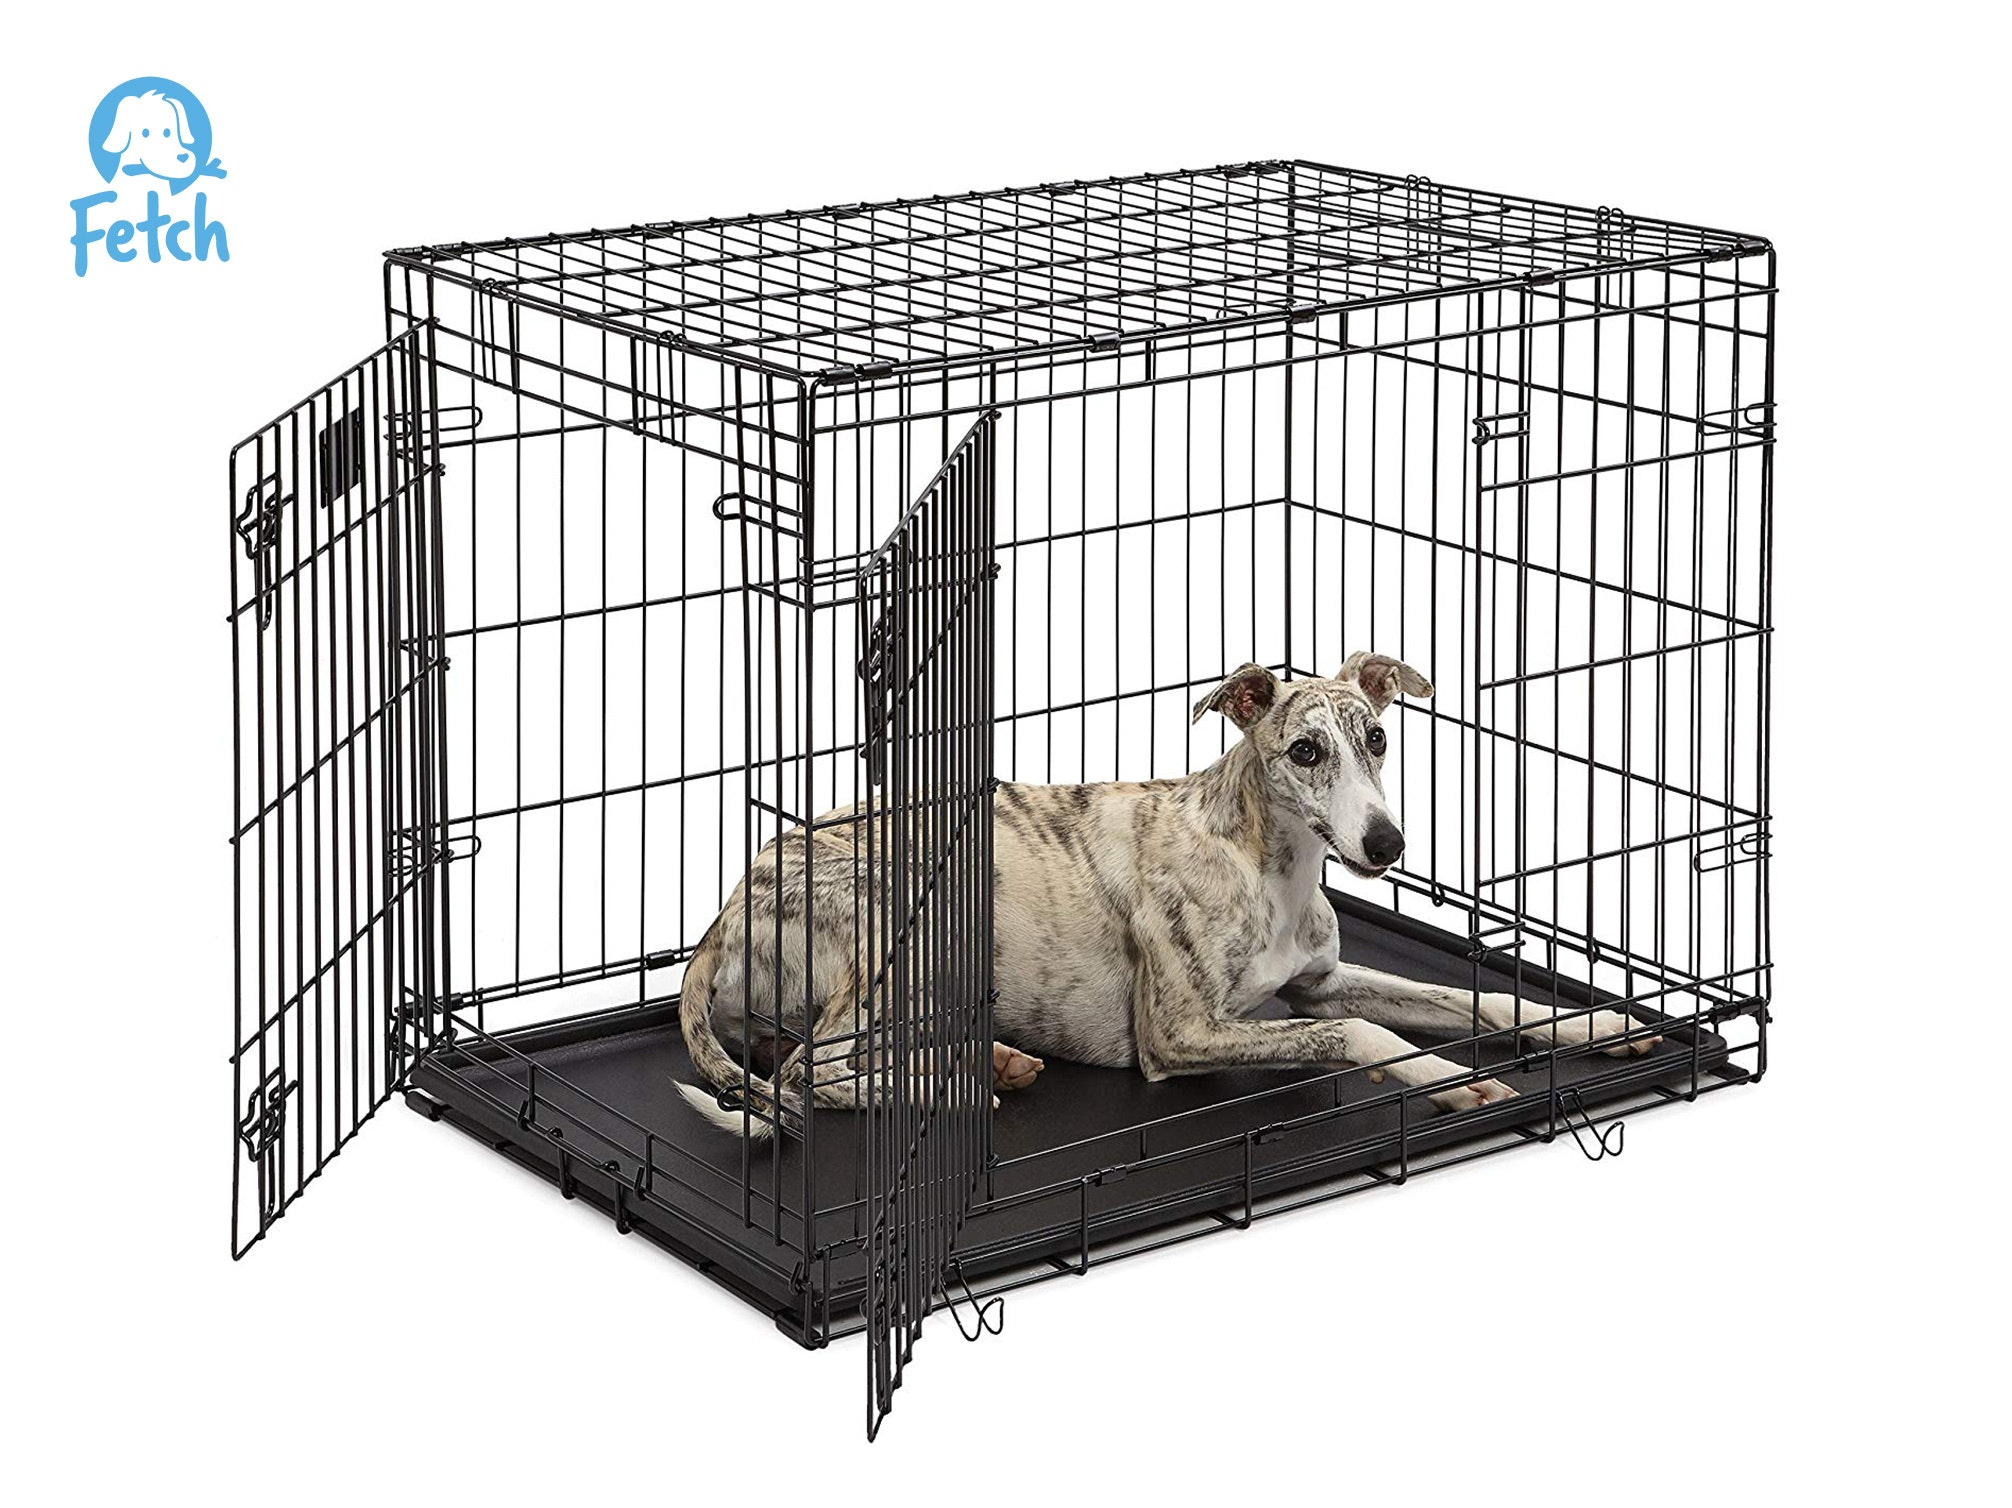 Wondrous Fetch Dog Crate Cage Double Door Foldable Large Machost Co Dining Chair Design Ideas Machostcouk